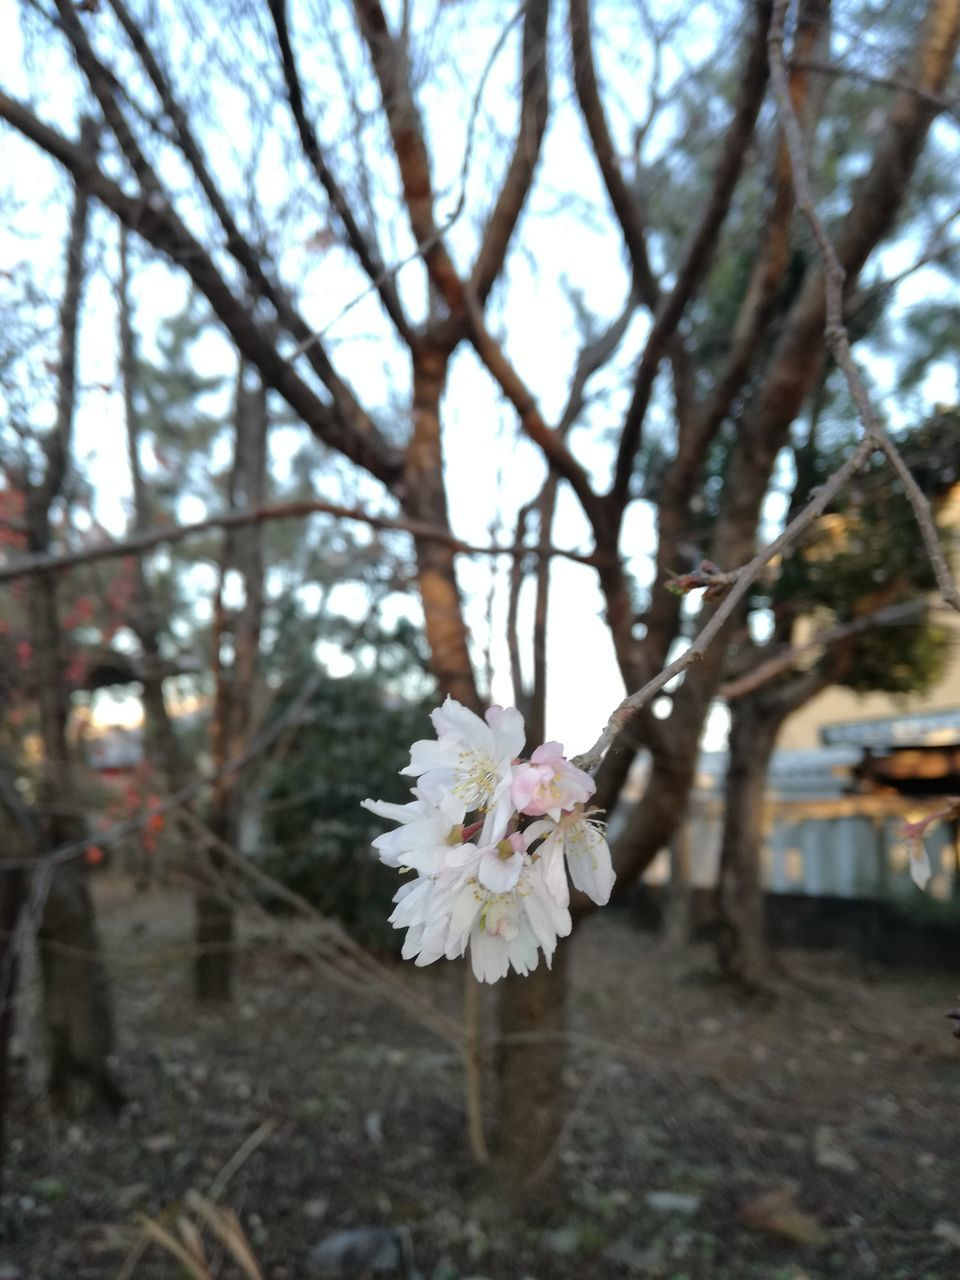 flower, tree, blossom, white color, fragility, nature, focus on foreground, springtime, growth, branch, beauty in nature, flower head, petal, day, no people, close-up, freshness, outdoors